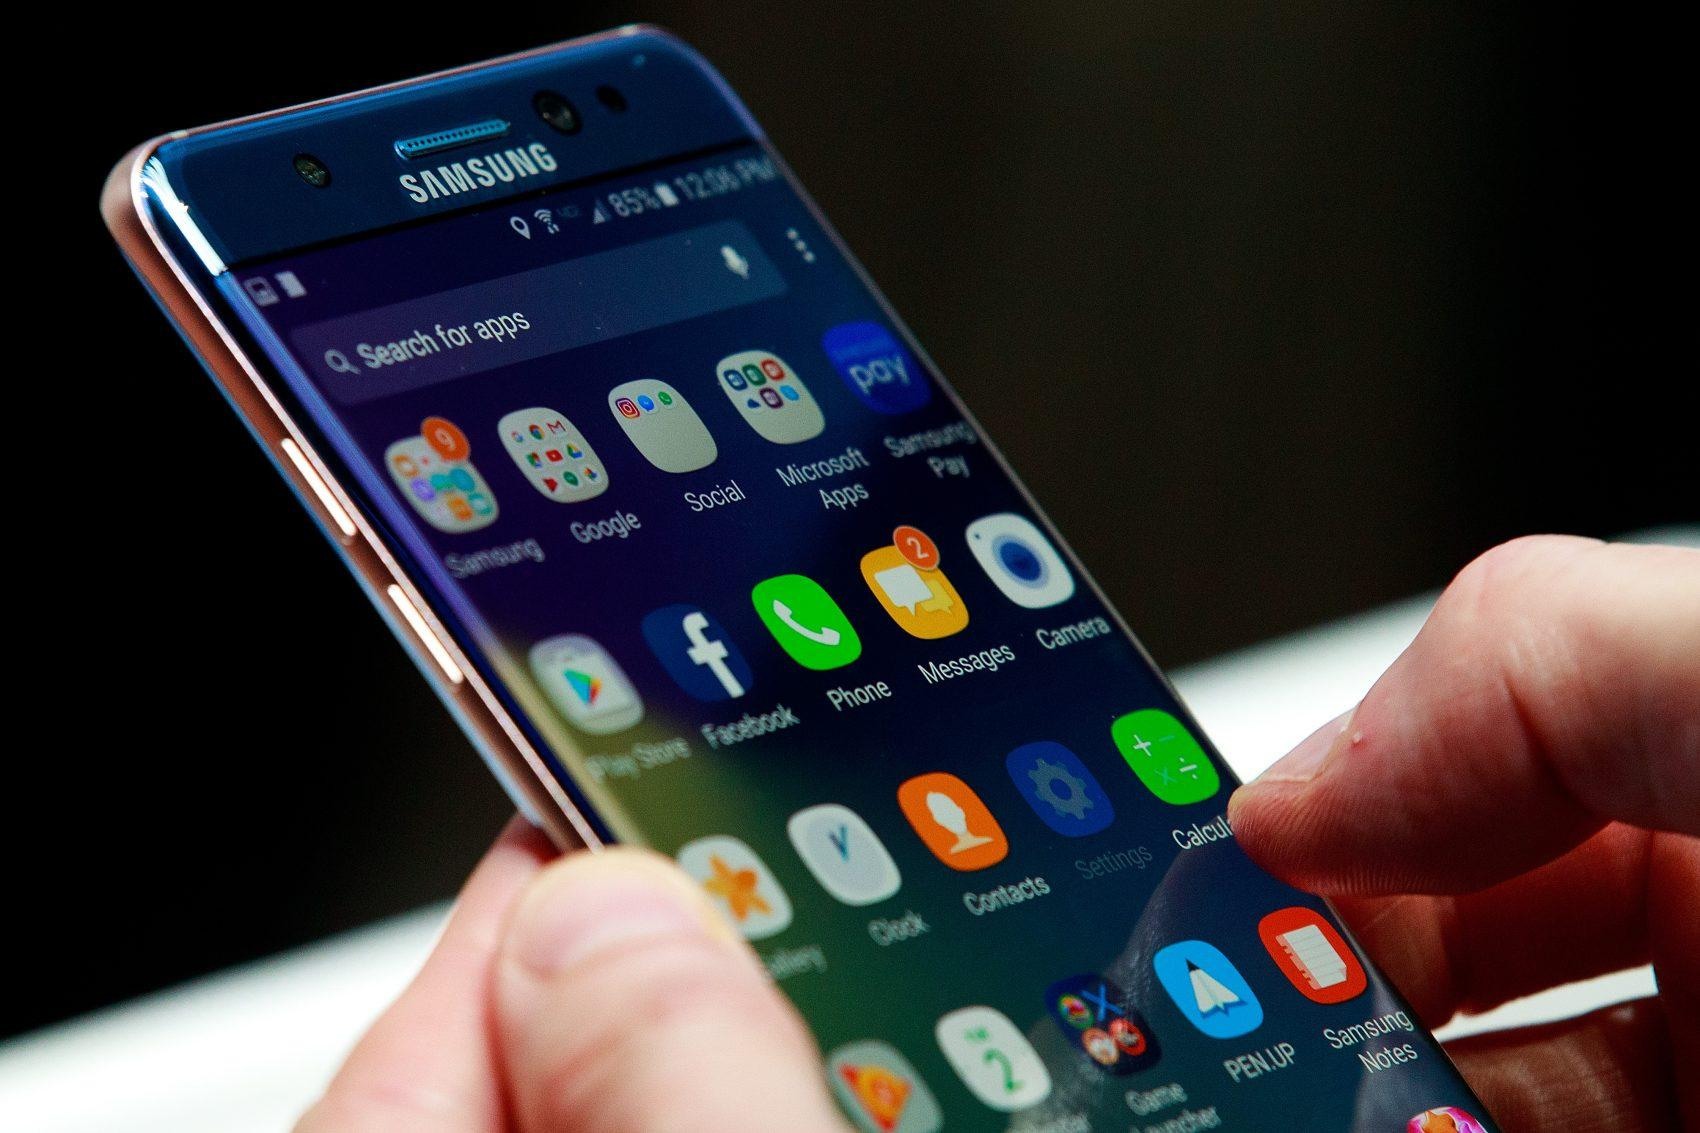 Samsung slashes preliminary Q3 earnings after discontinuing Galaxy Note 7